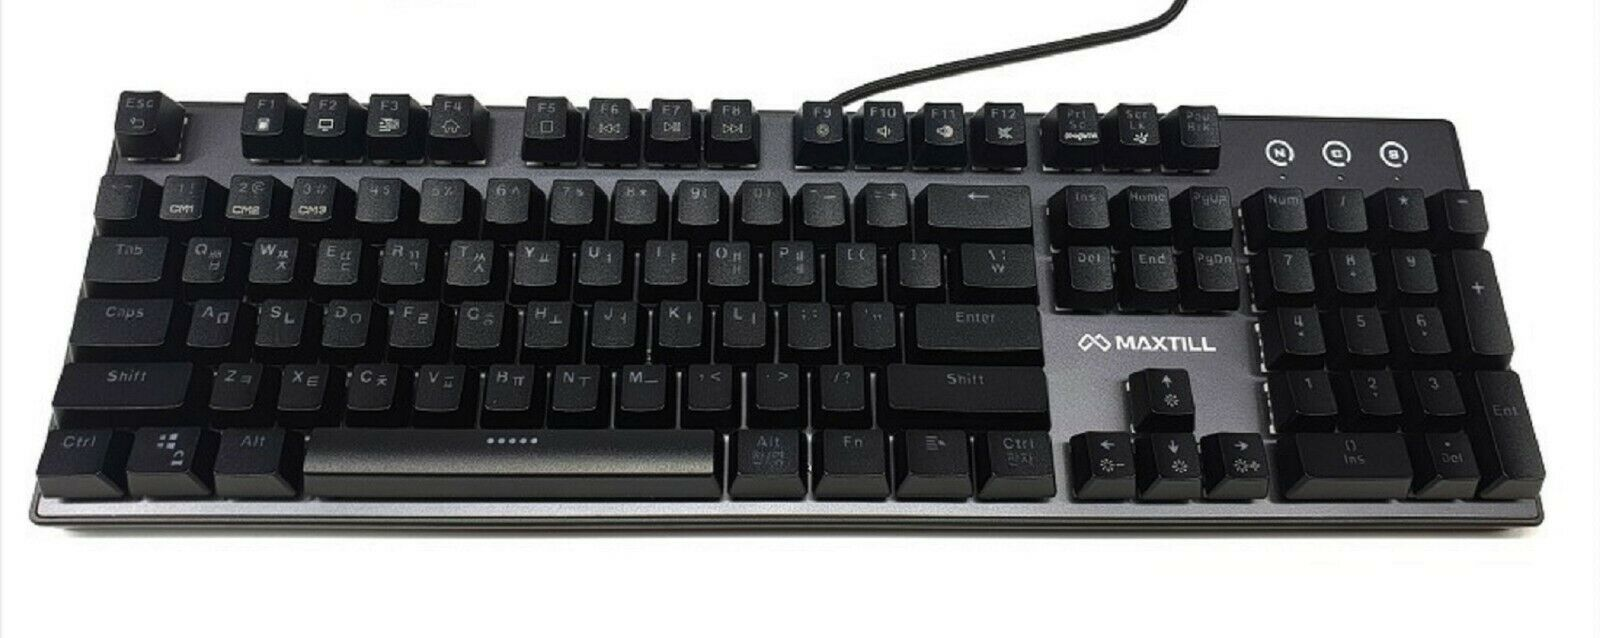 Maxtill G610KV2 Korean English Gaming Keyboard Outemu Switches (Blue Switch)